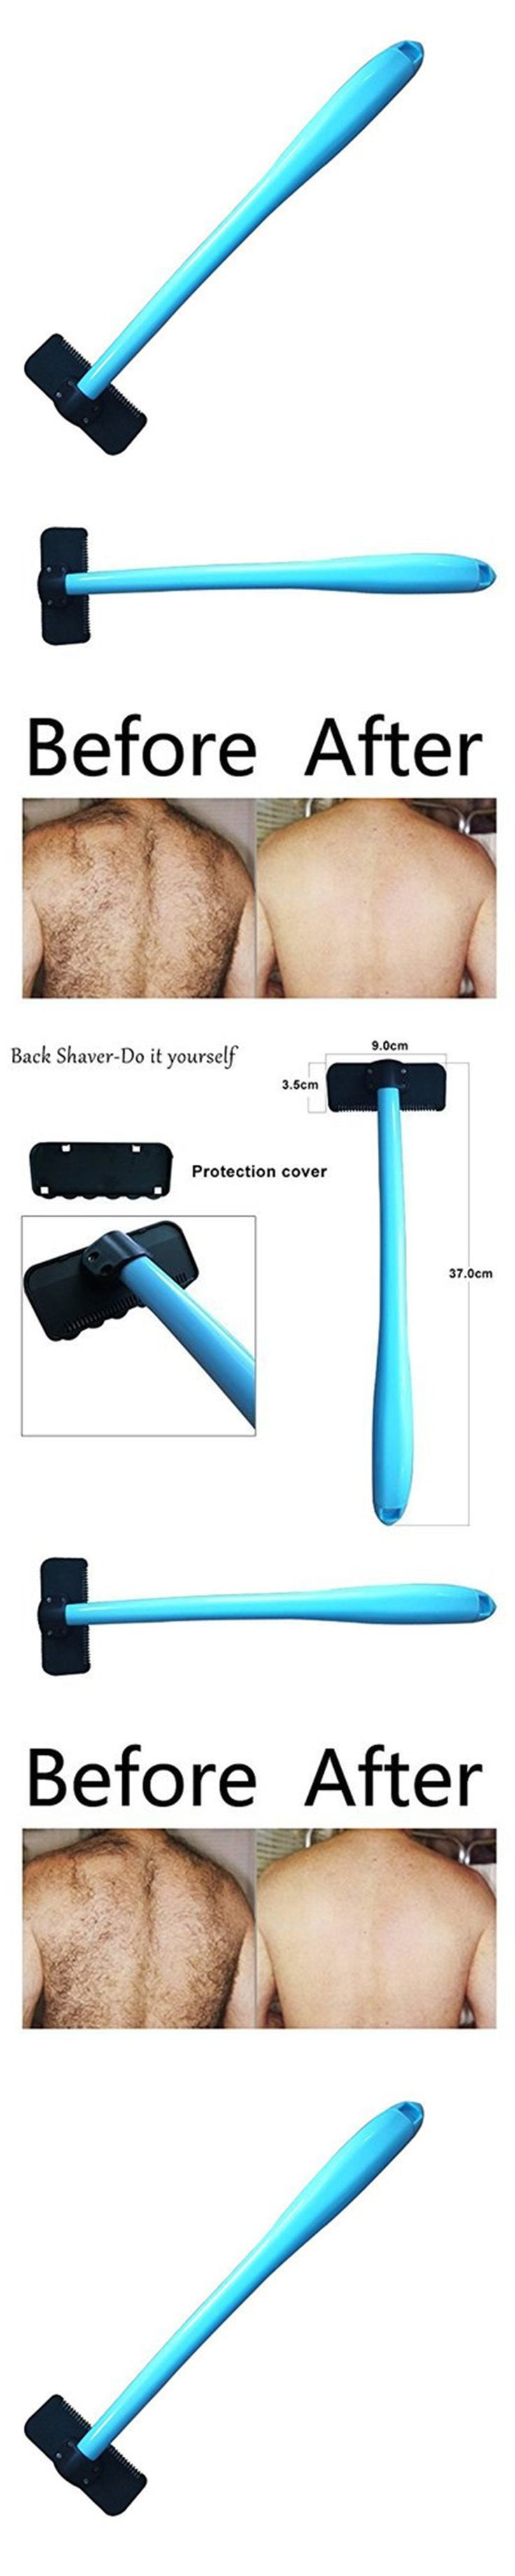 Best 25 back shaver ideas on pinterest body shaver unique do yourself manual back hair trimmer shaver long handle body shaver back shaver hair trimmer and solutioingenieria Gallery